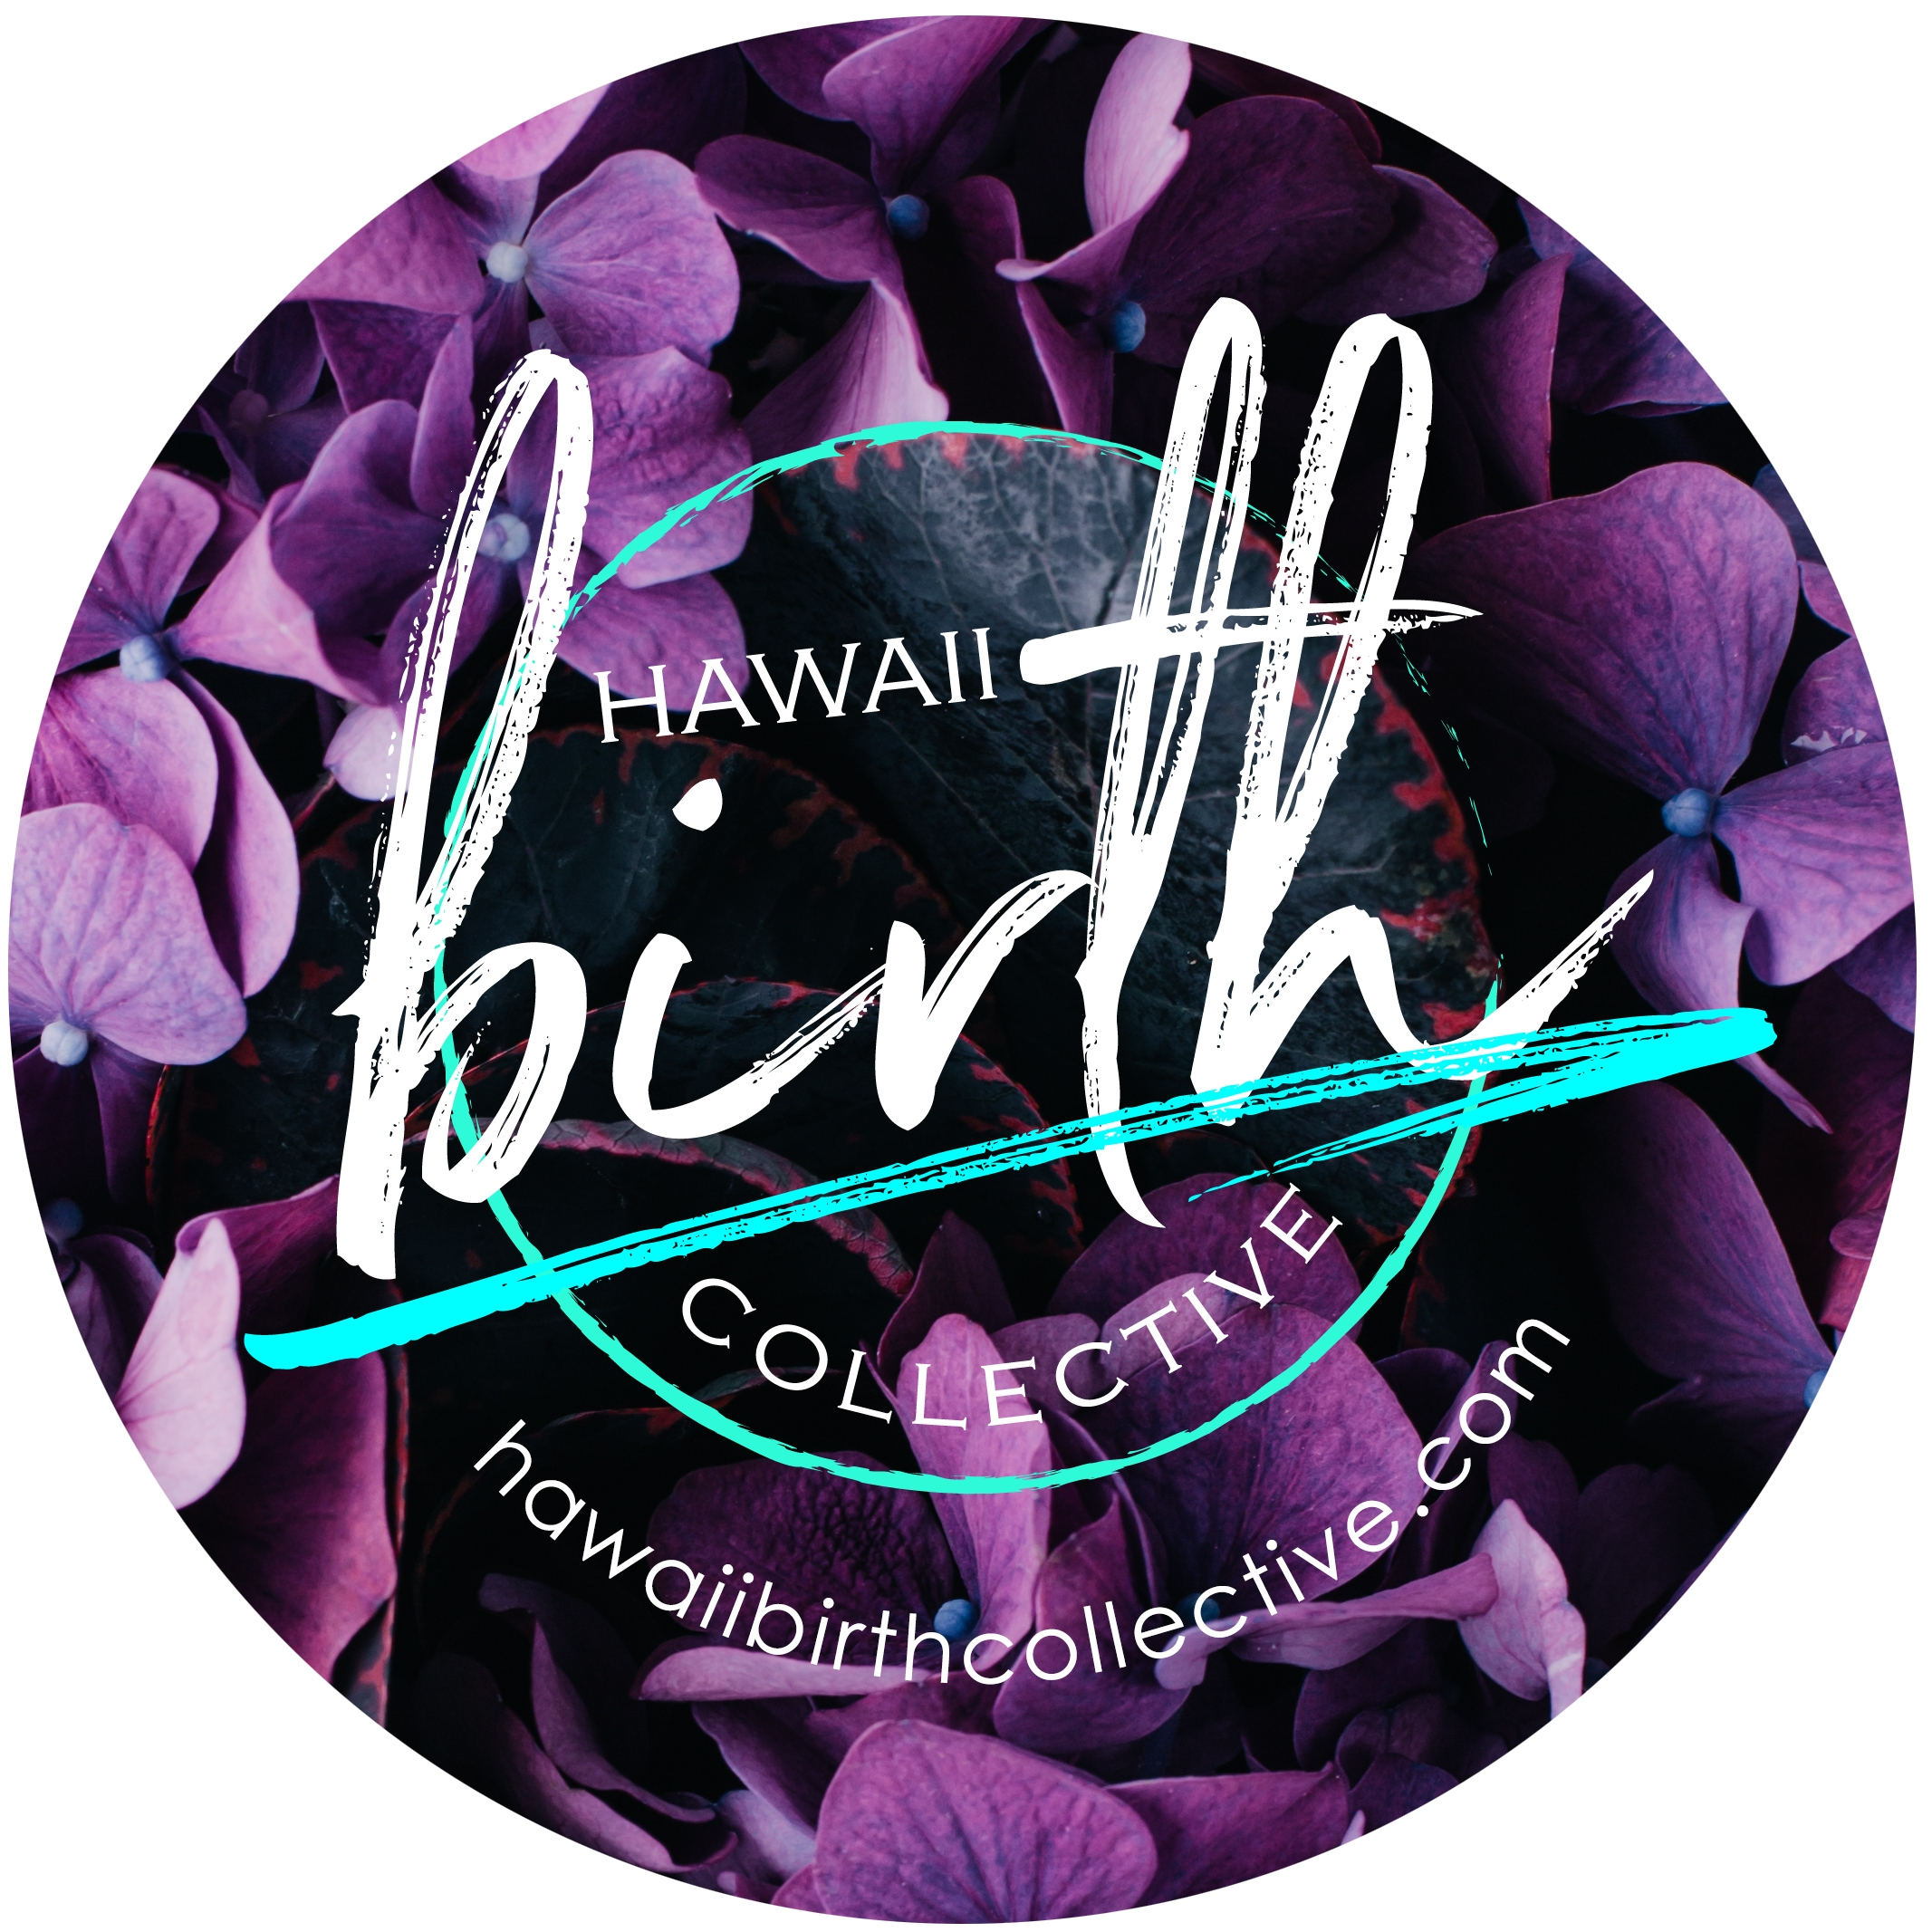 Oahu Hawaii Birth Collective